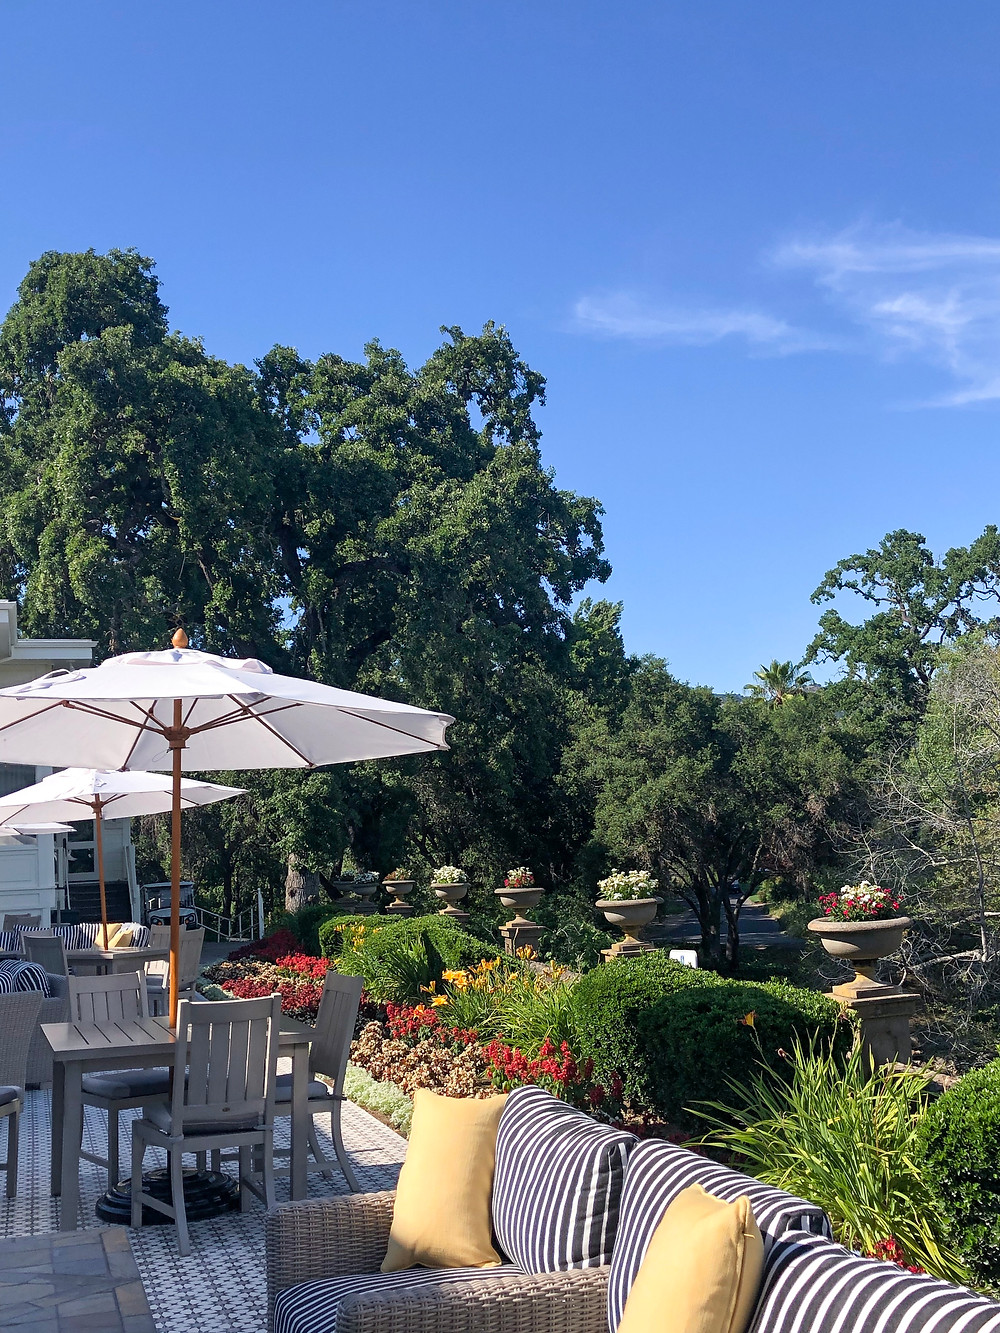 Looking to plan a honeymoon, weekend getaway, bachelorette party or a girls trip in Napa Valley? This ultimate restaurant and hotel guide is perfect for you! Click through to view more photos! #napavalley #foodieguide #michelinstar #luxuryresort